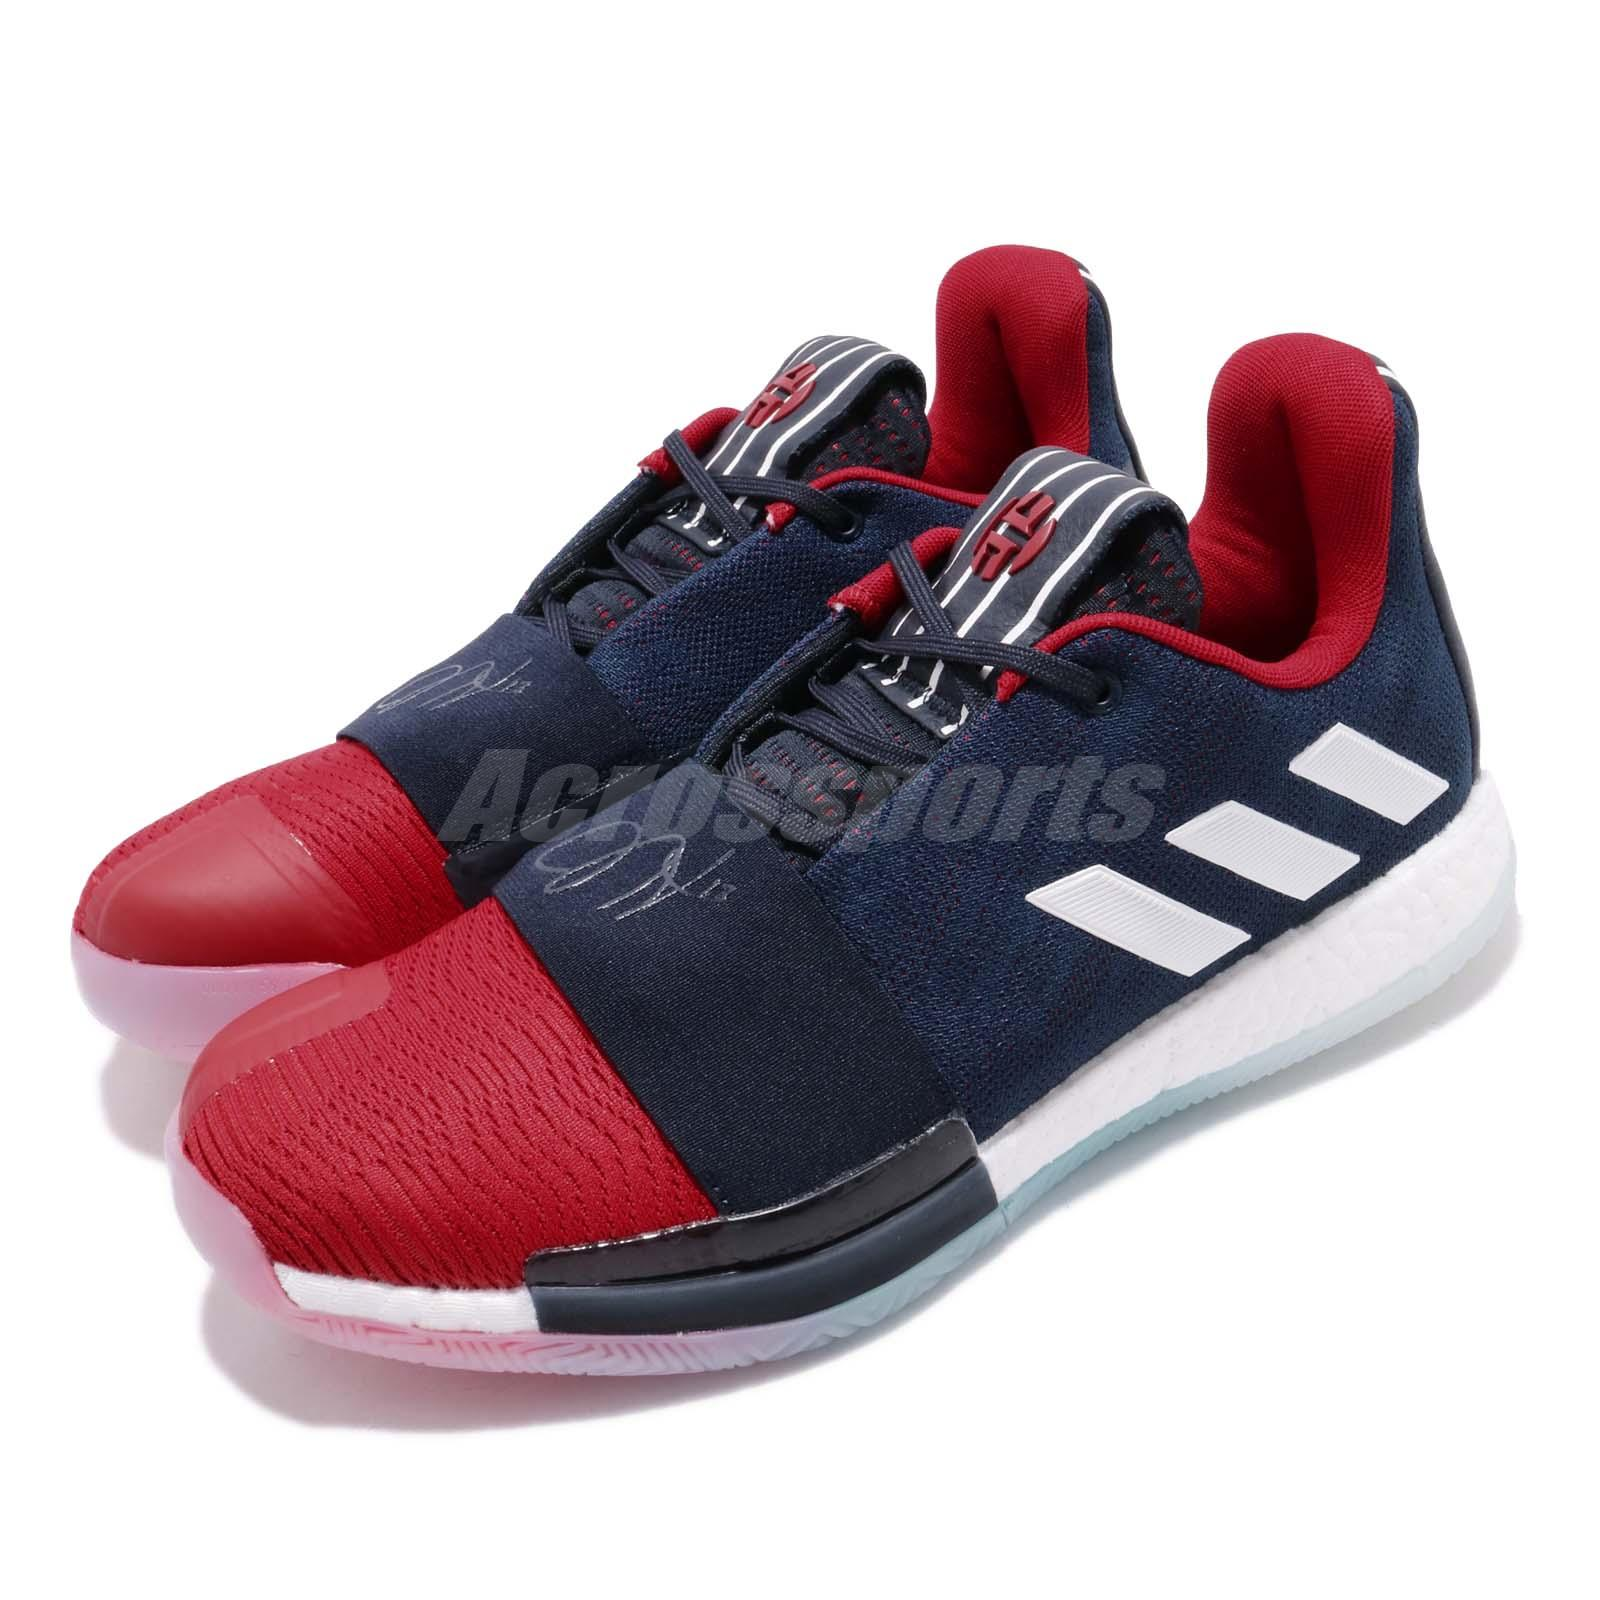 Details about adidas Harden Vol. 3 Shark Navy Red White James Mens Basketball Shoes EE3954